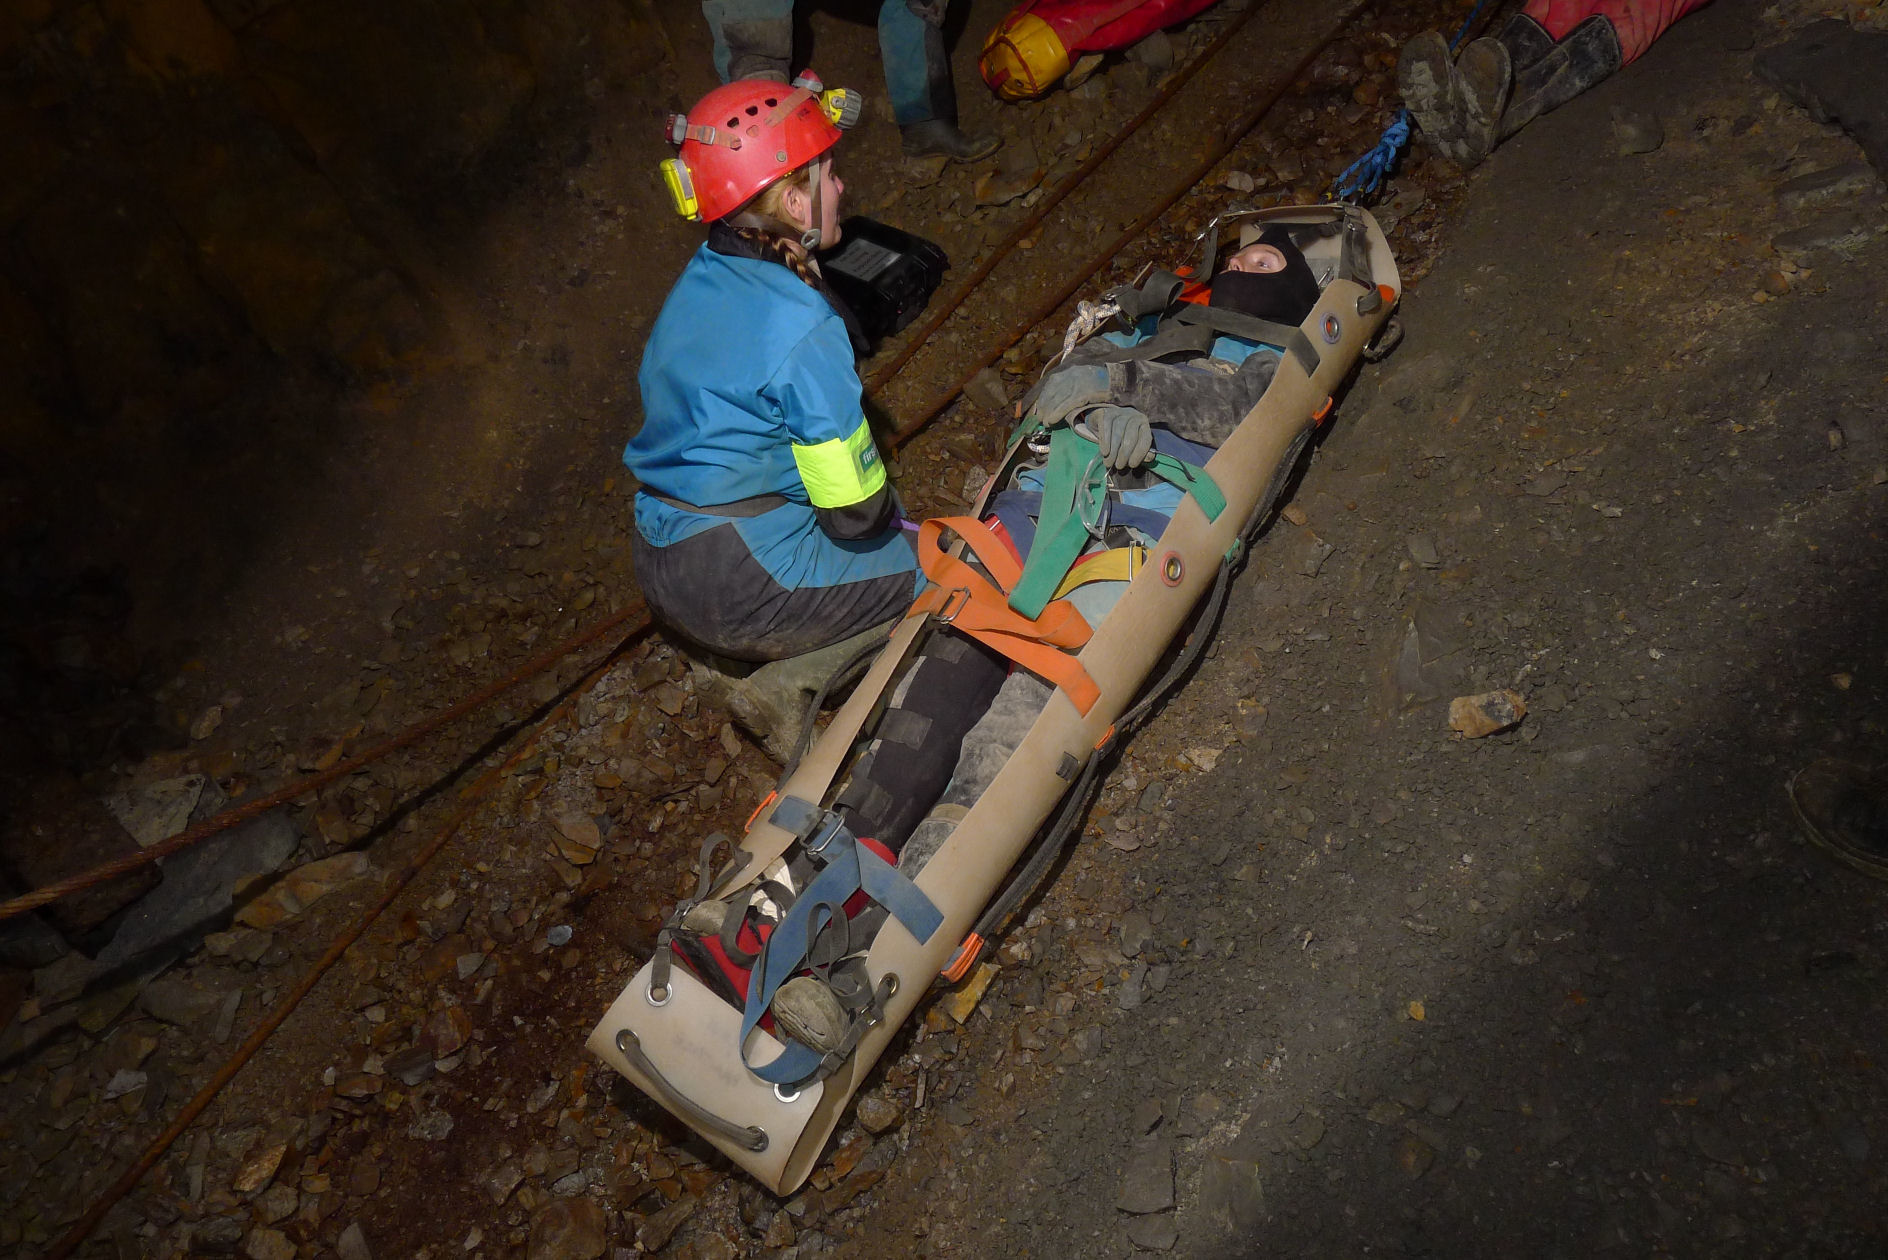 Appeal: South and Mid Wales Cave Rescue Team seeks £1,000